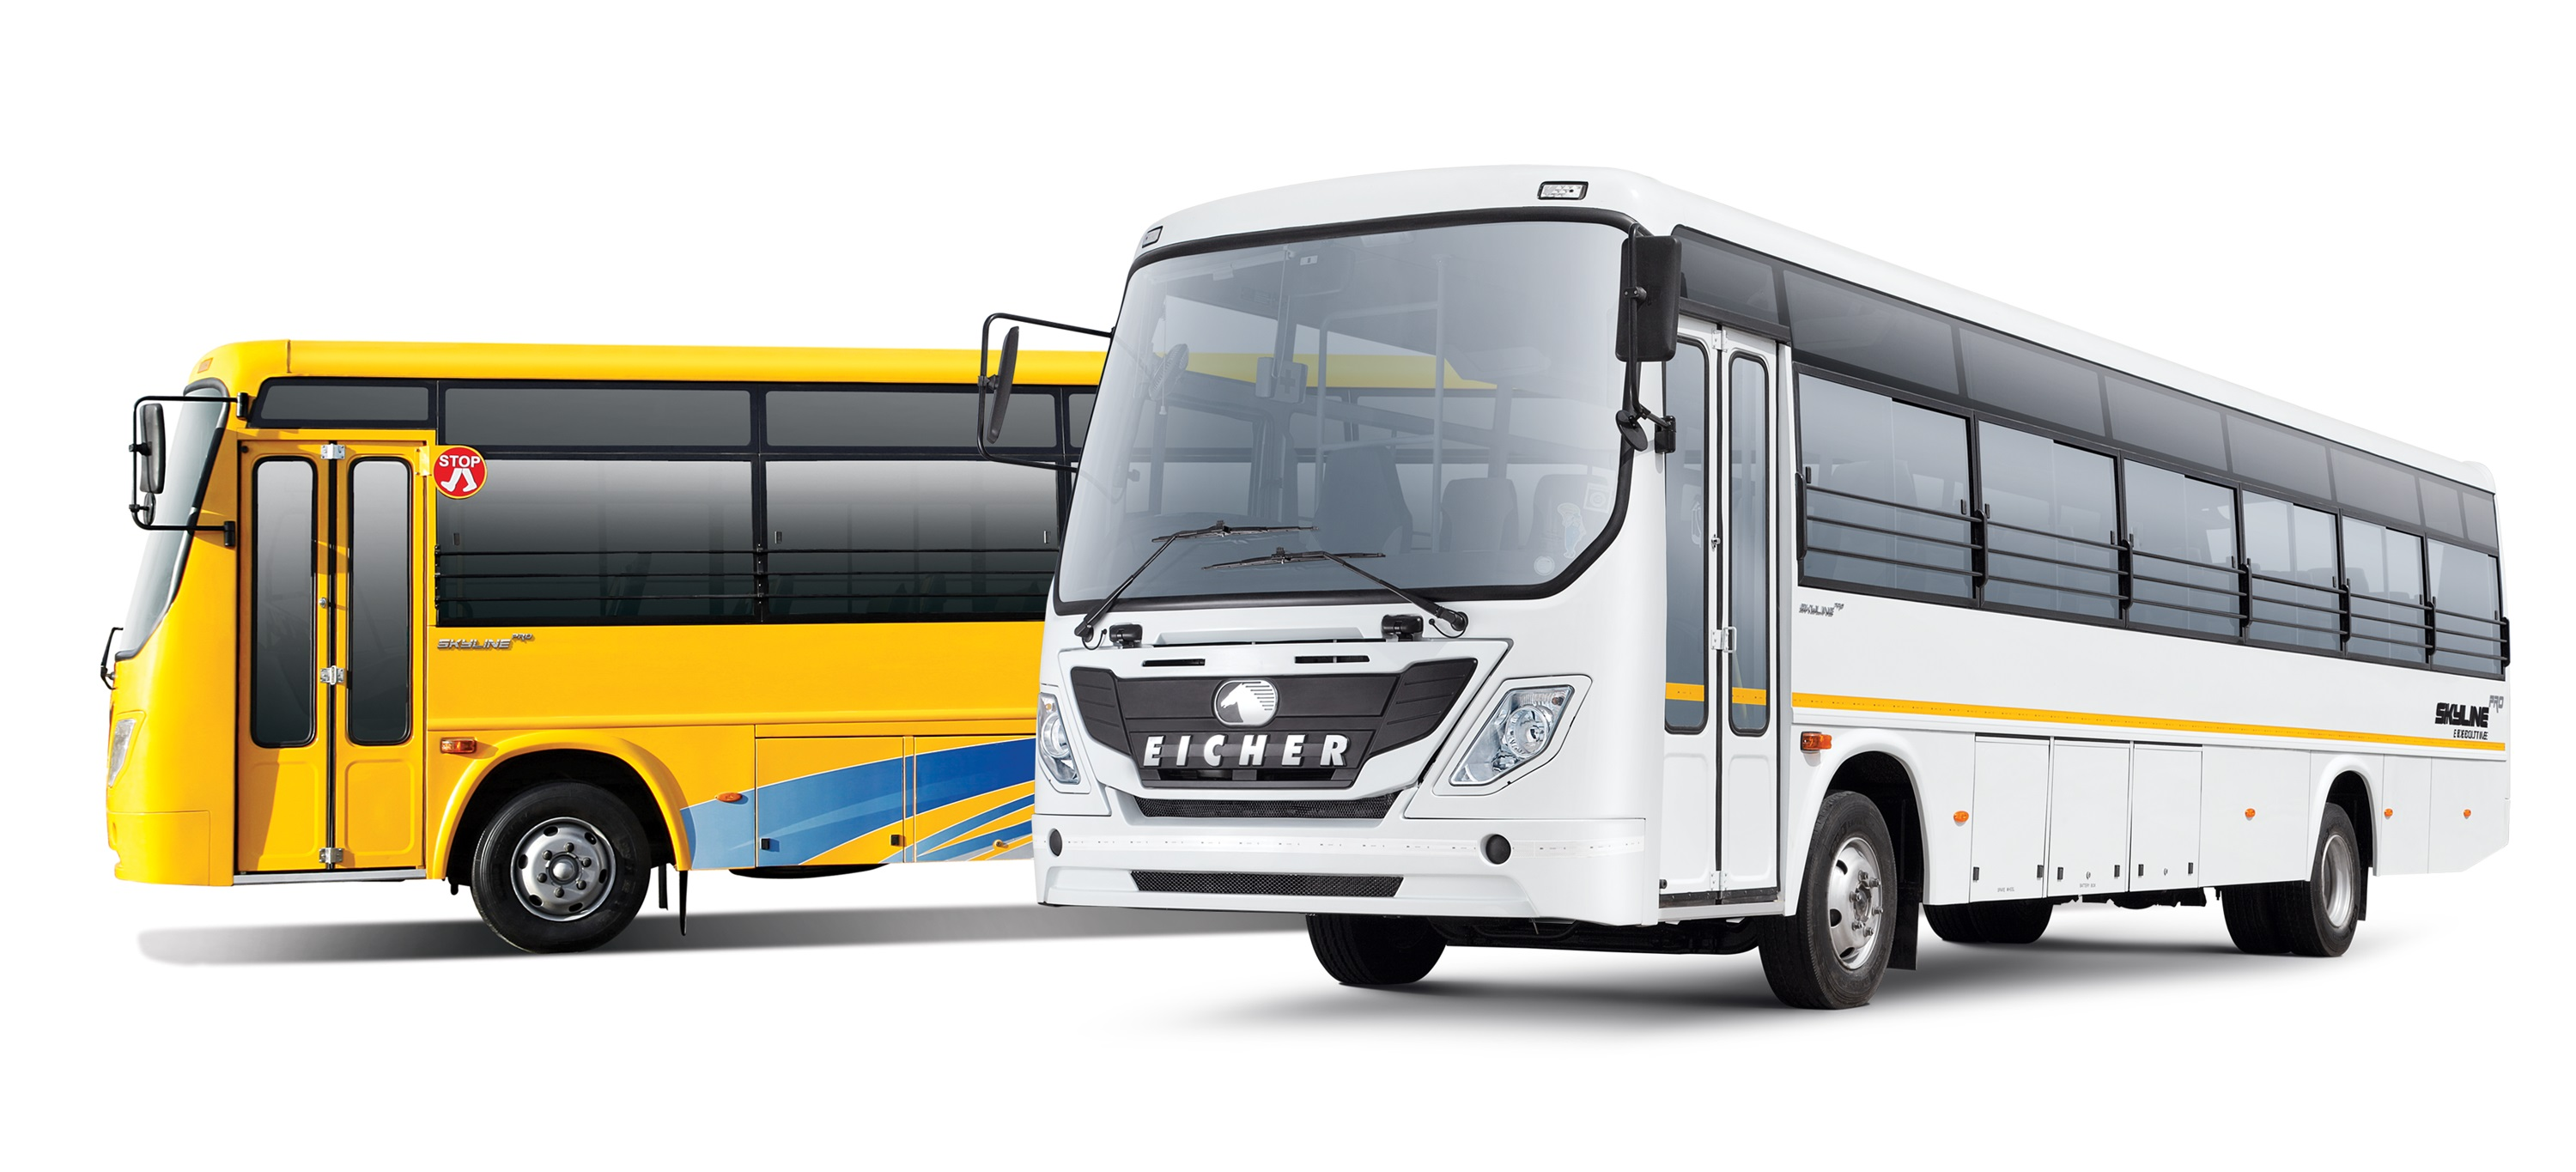 Eicher Starline 24 Seater